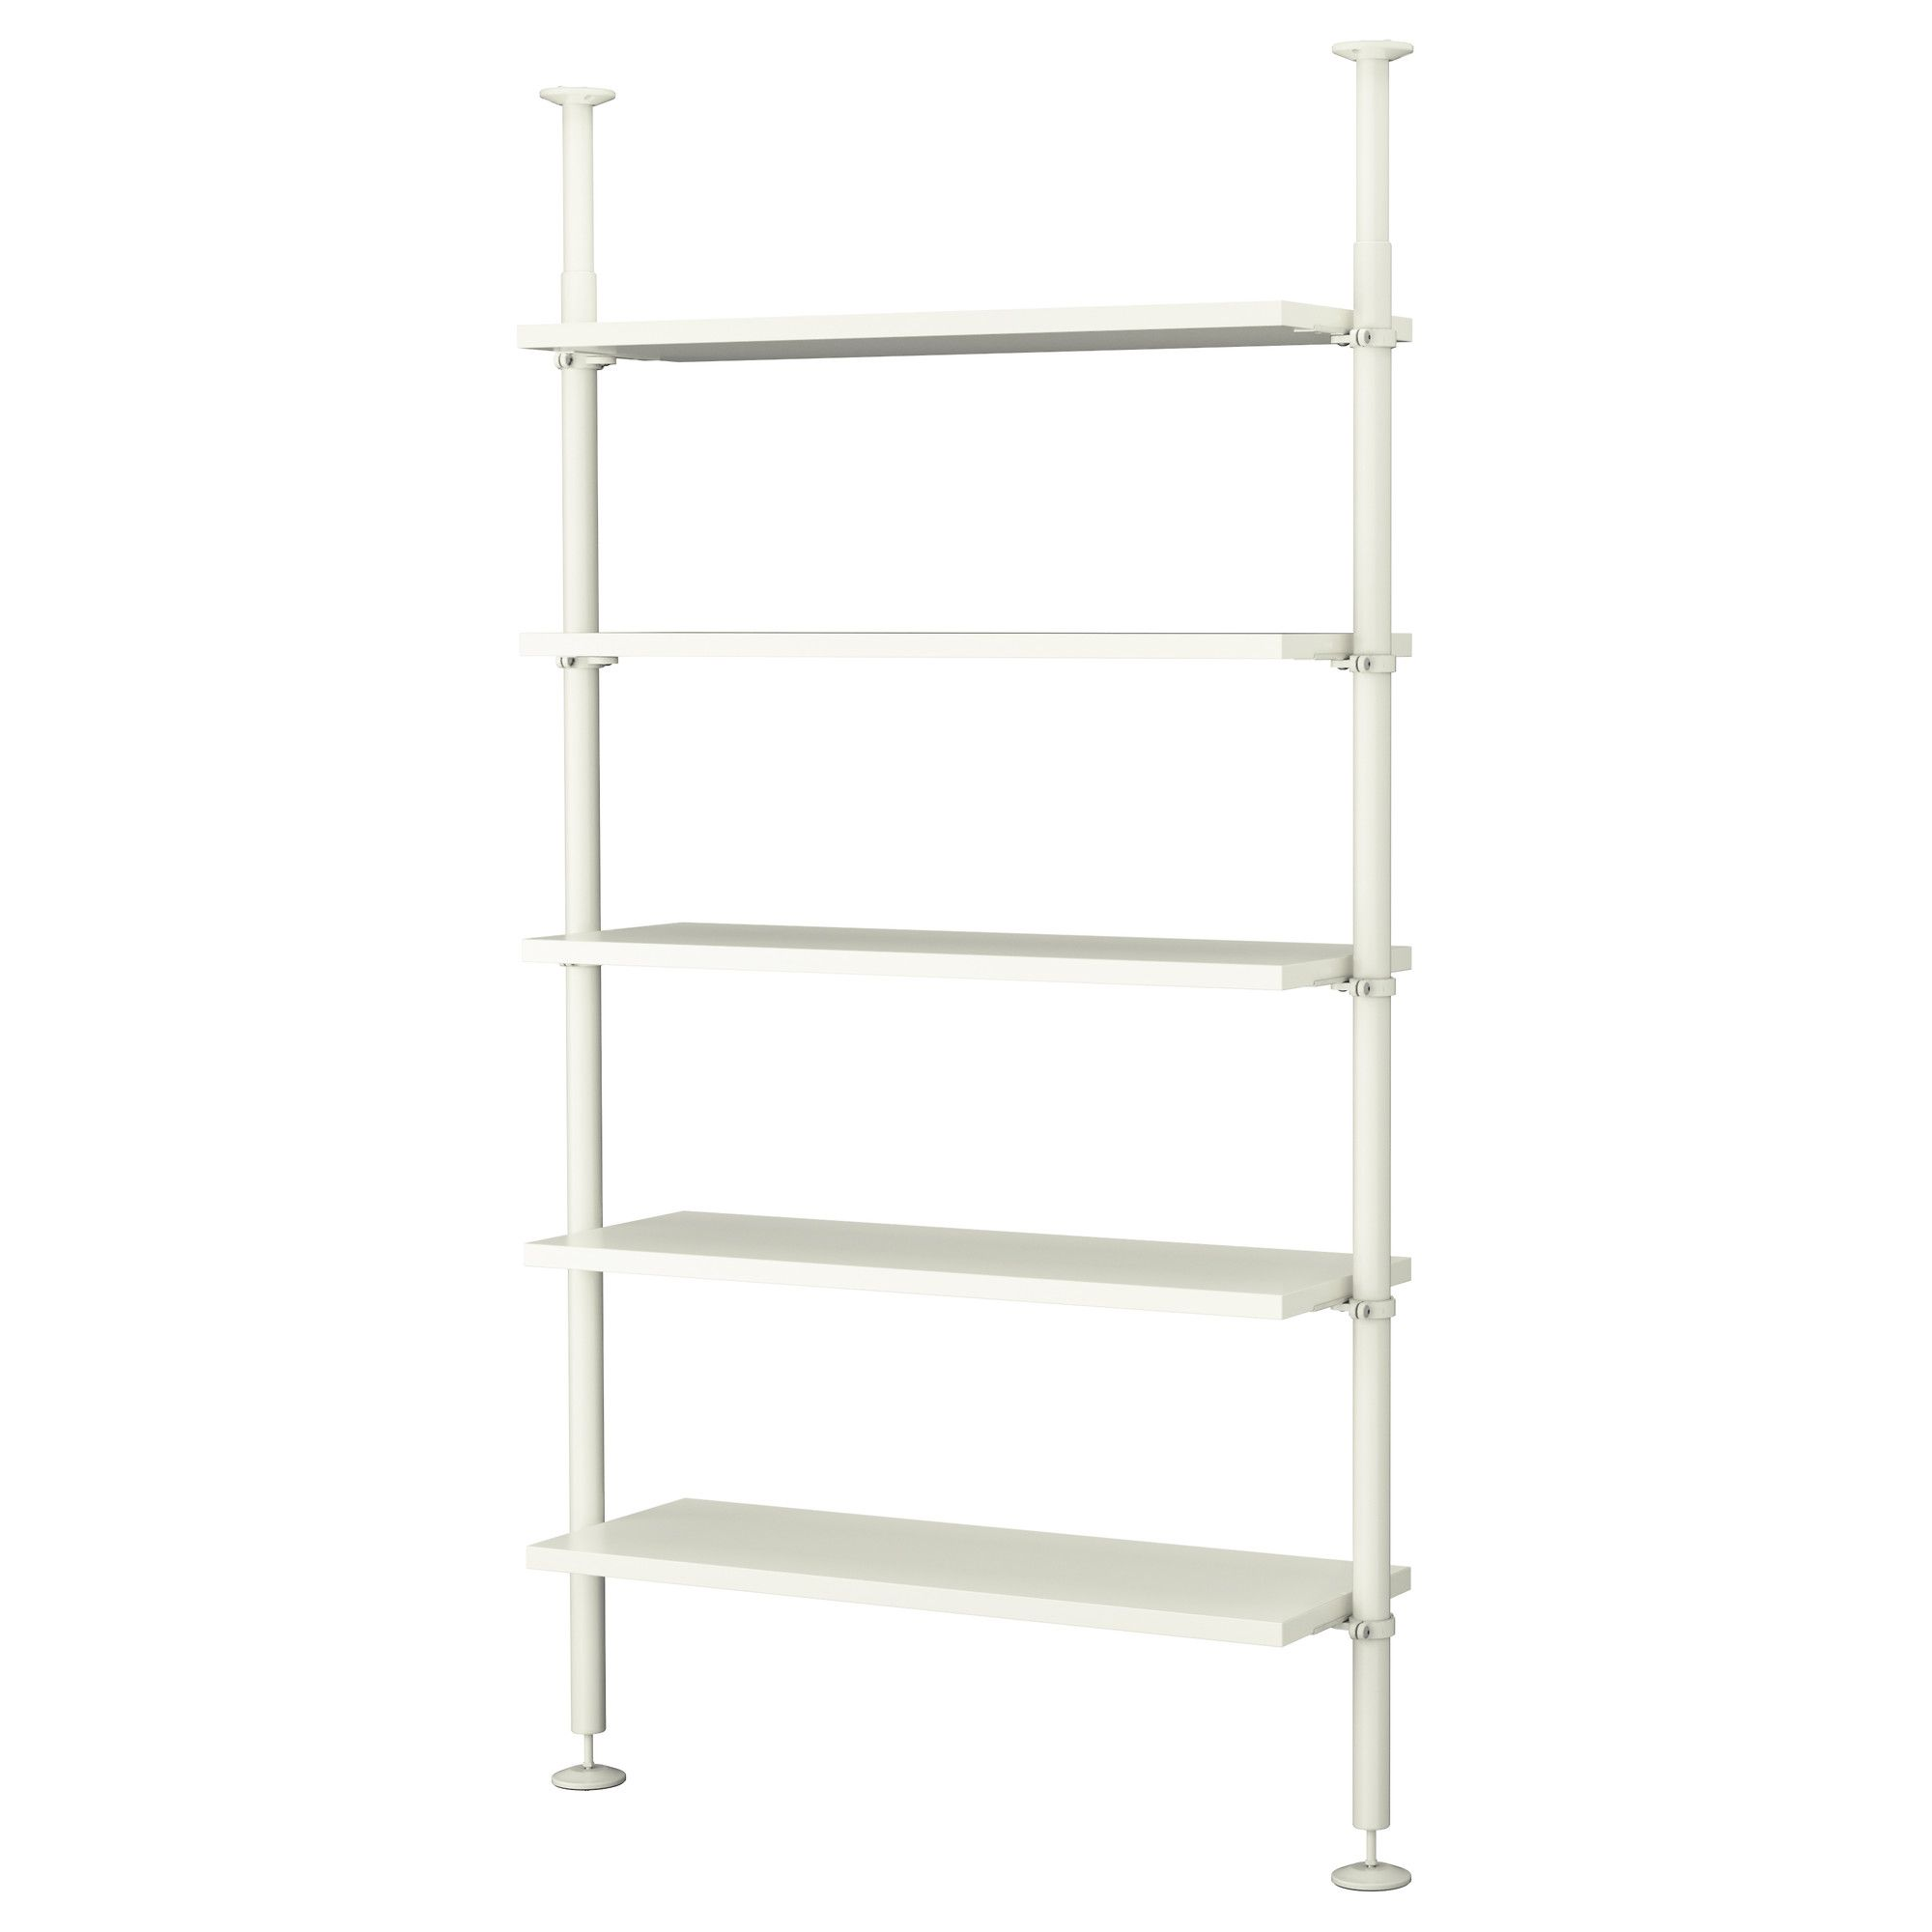 Adjustable Width Shelving Stolmen 1 Section White Shoe Rack Office Furniture And Shelves